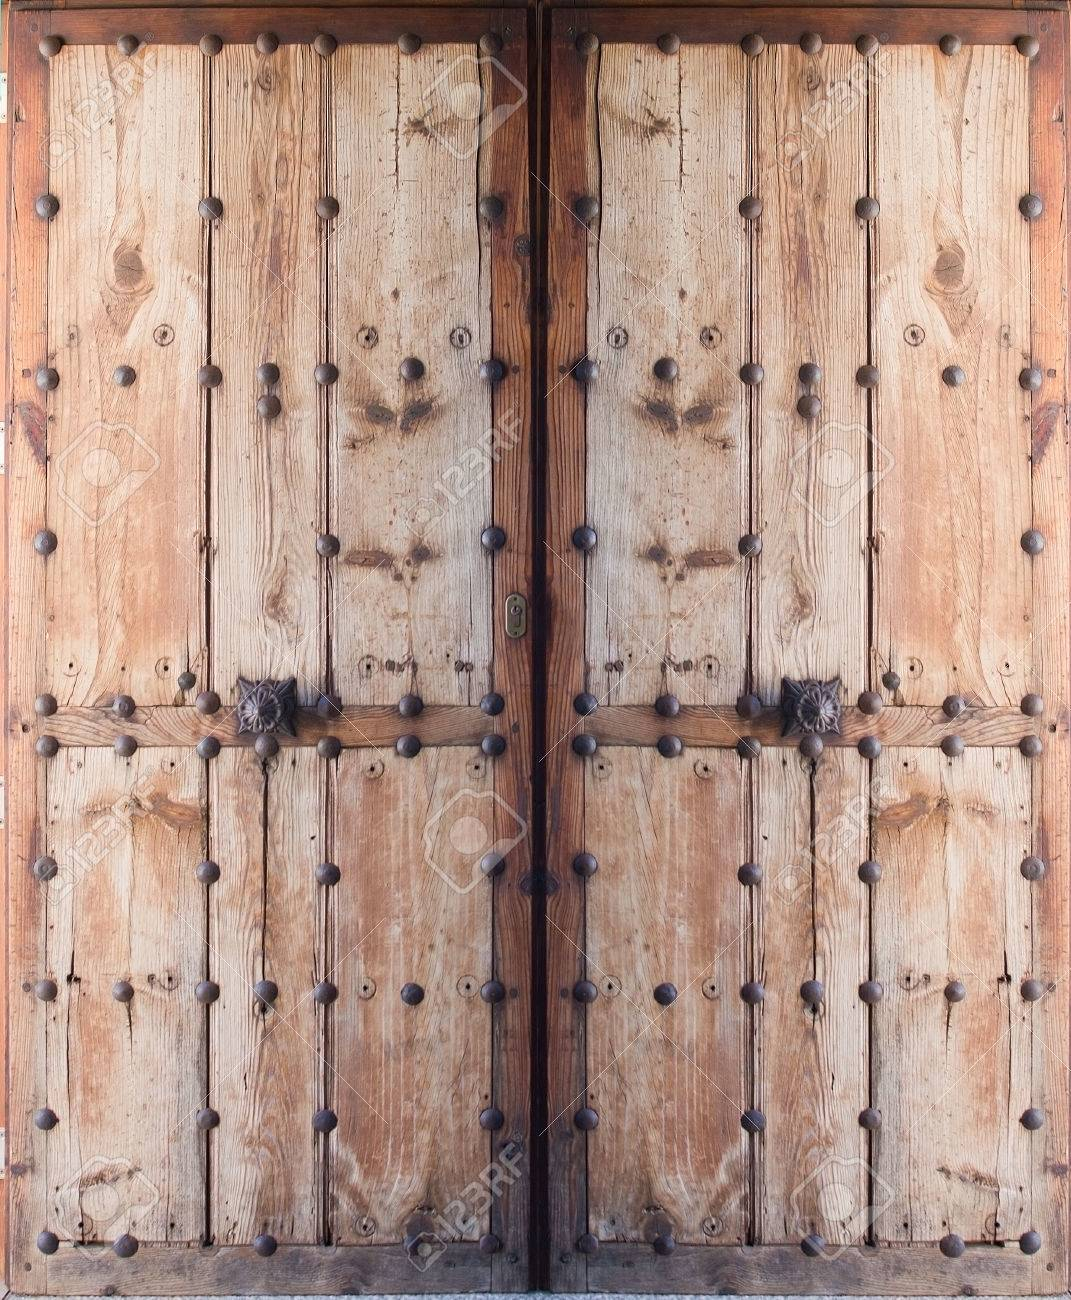 Double doors of antique wood and metal nails, Mallorca, Balearic islands,  Spain. - Double Doors Of Antique Wood And Metal Nails, Mallorca, Balearic